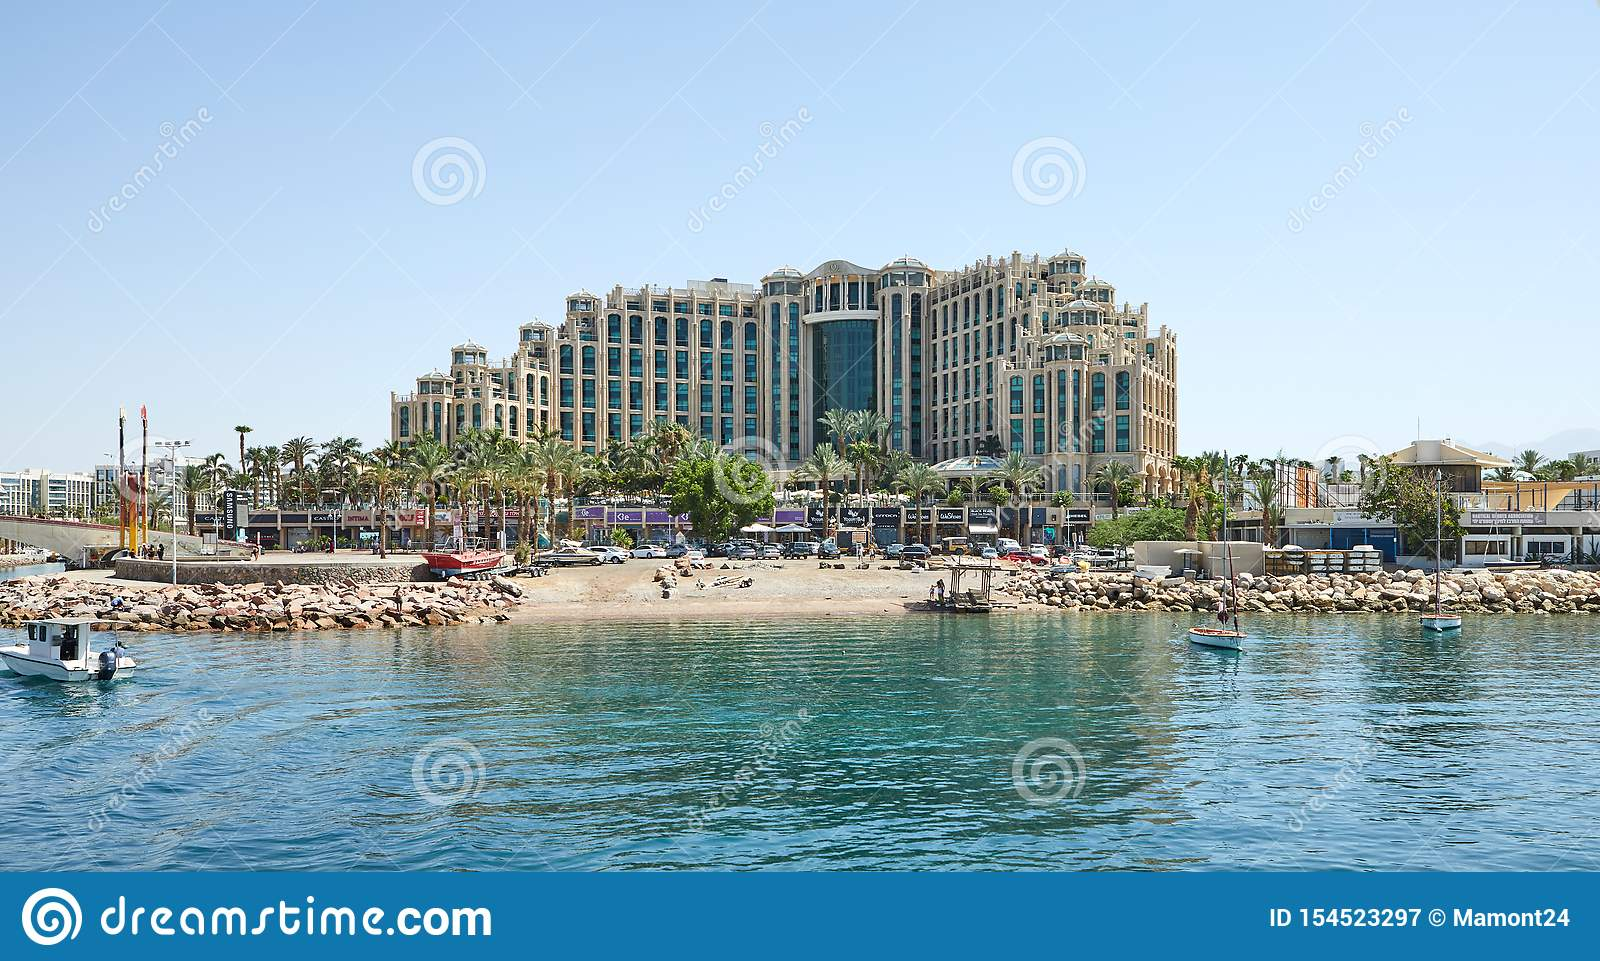 View of the Gulf of Eilat with luxury yachts. Hotels for tourists boats and yachts for a holiday